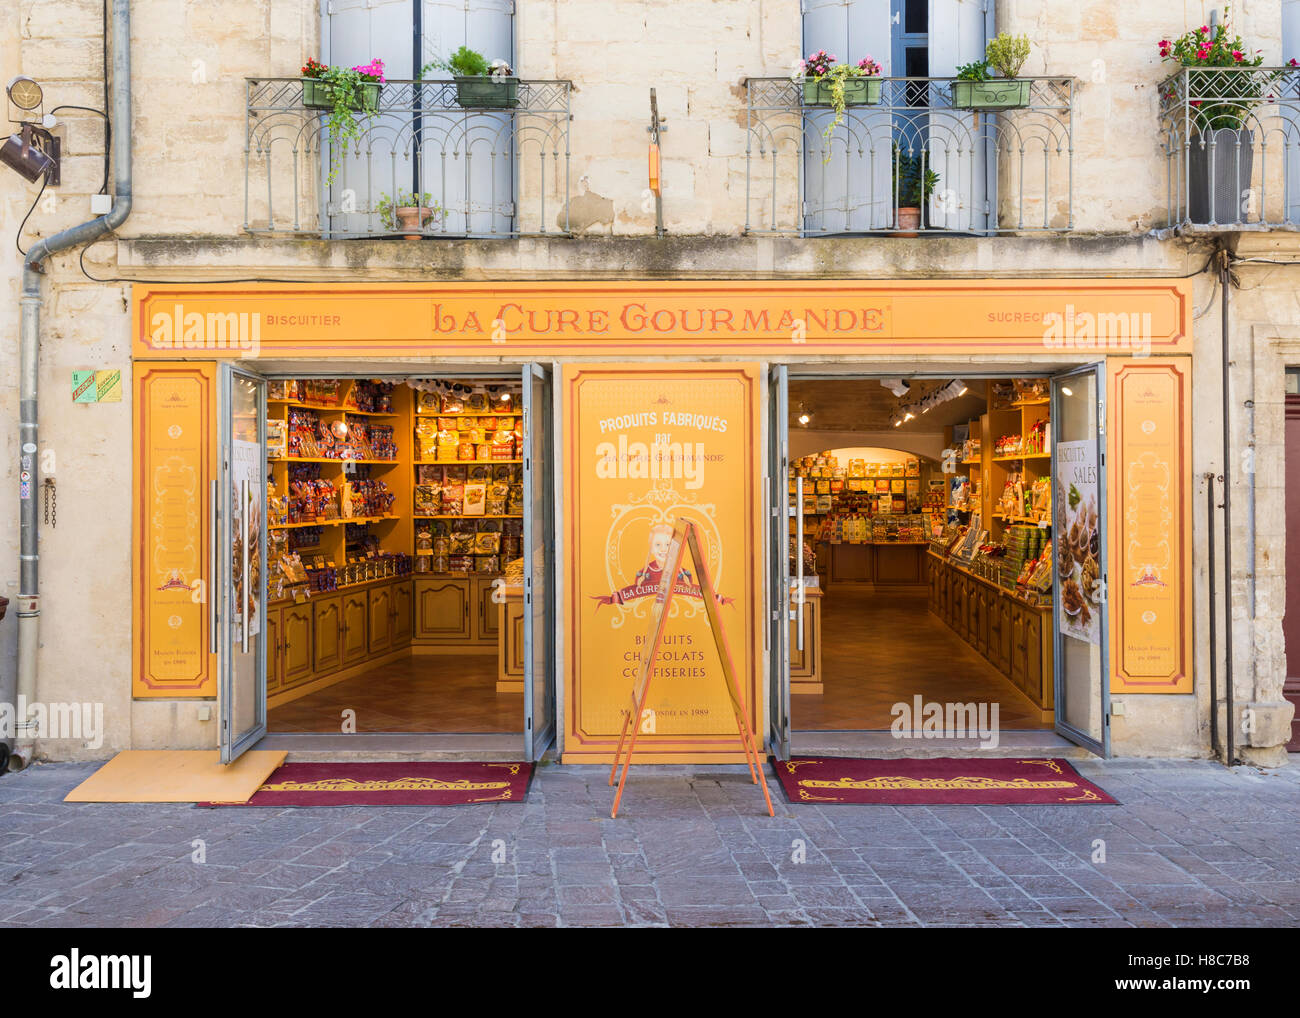 La Cure Gourmande shop facade in the town of Uzès, Gard, France - Stock Image